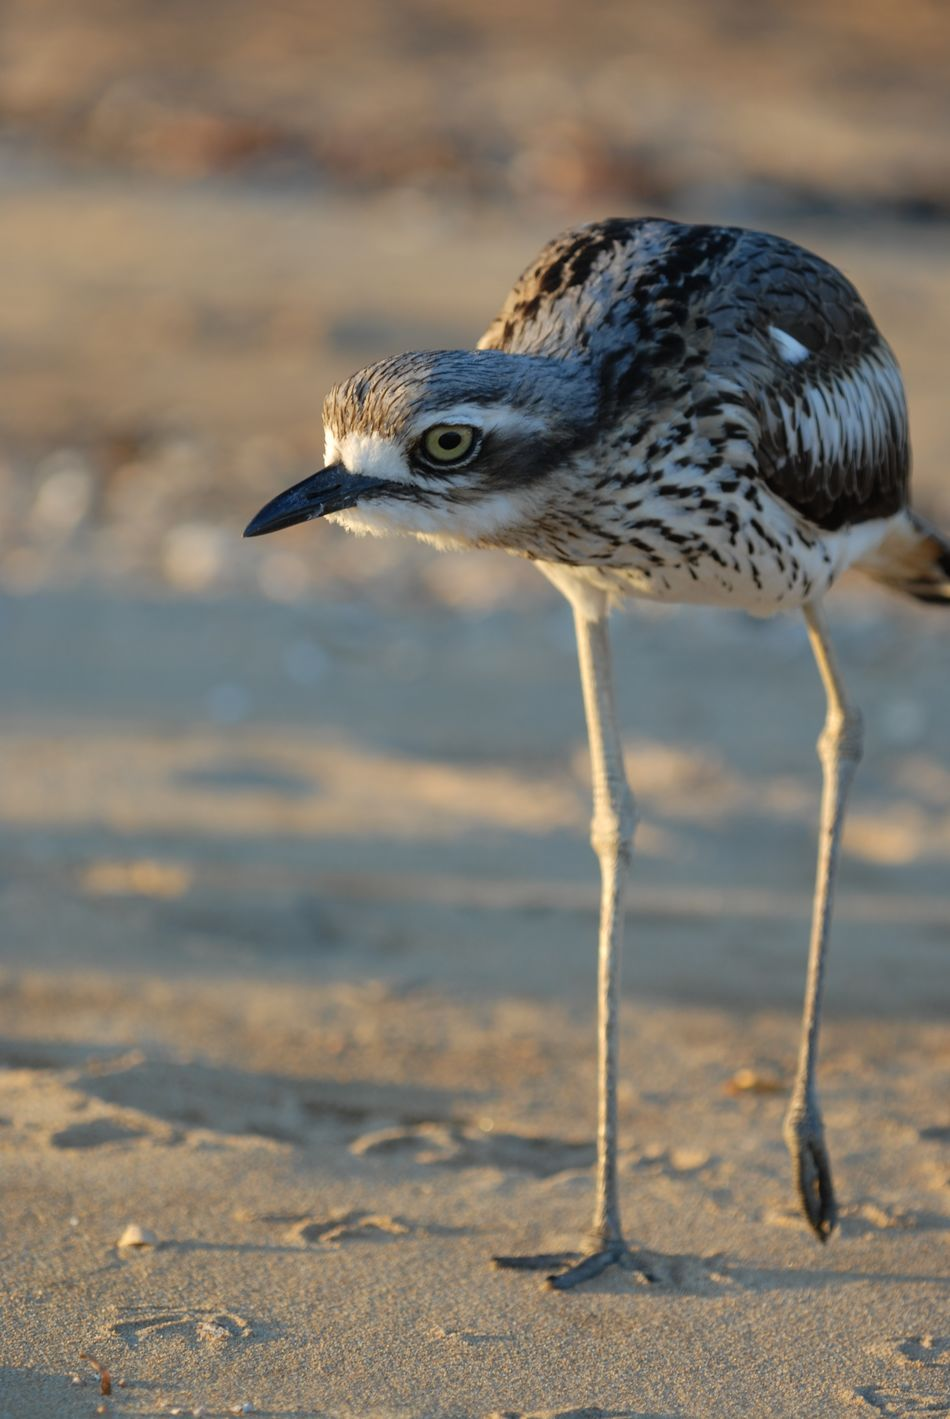 Bush Stone-curlew, or Bush Thick-knee, Burhinus grallarius Bird Bird Themes Burhinus Grallarius Bush Stone-curlew Bush Thick-knee Close-up Curlew Day Focus On Foreground No People One Bird Outdoors Standing